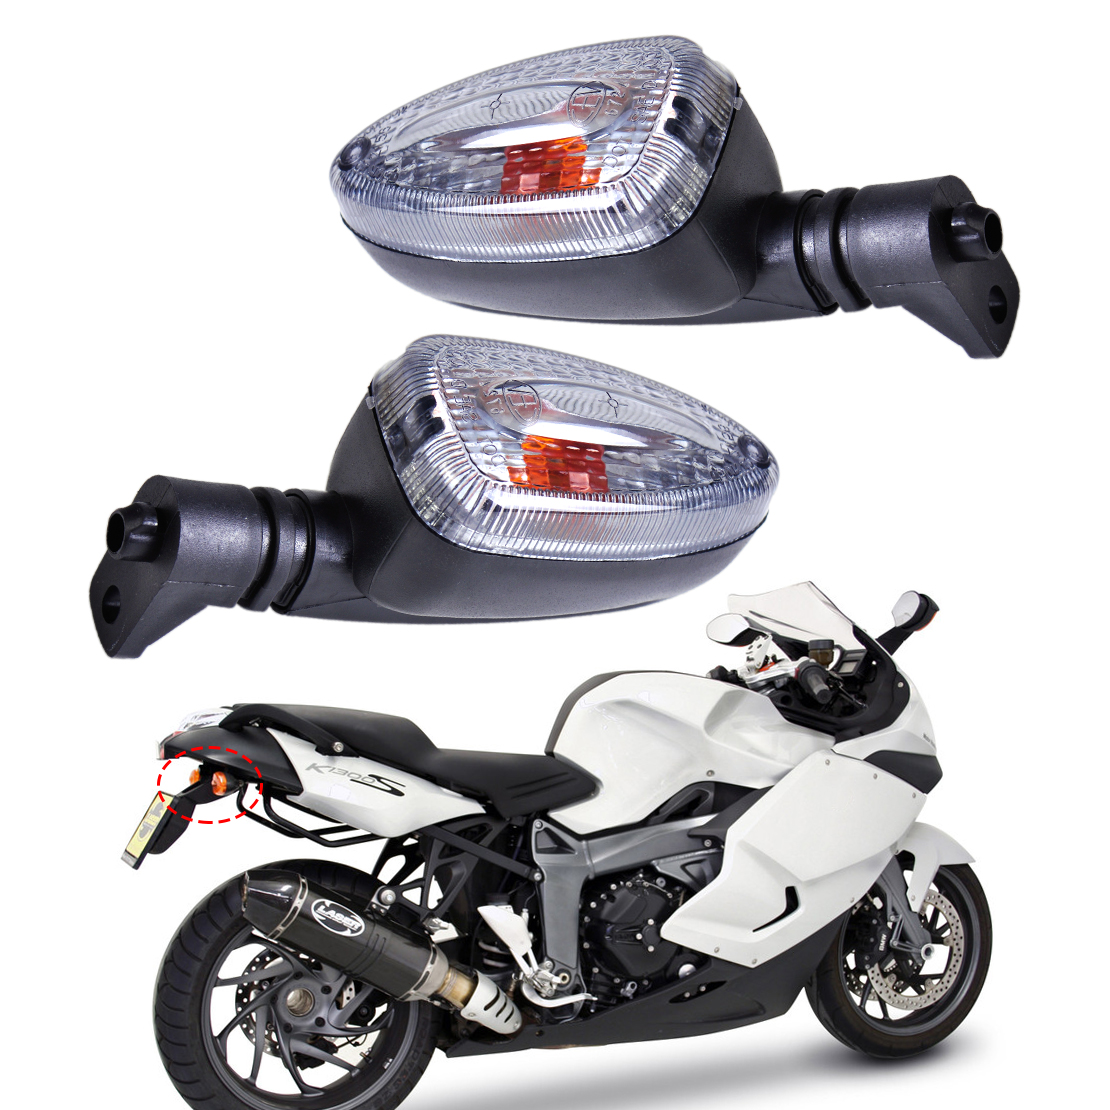 New 1Pair Motorcycle Clear Turn Signal Indicator Light Lamp Fit For BMW F650GS F800S K1300S R1200R G450X R1200GS K1200R F800ST